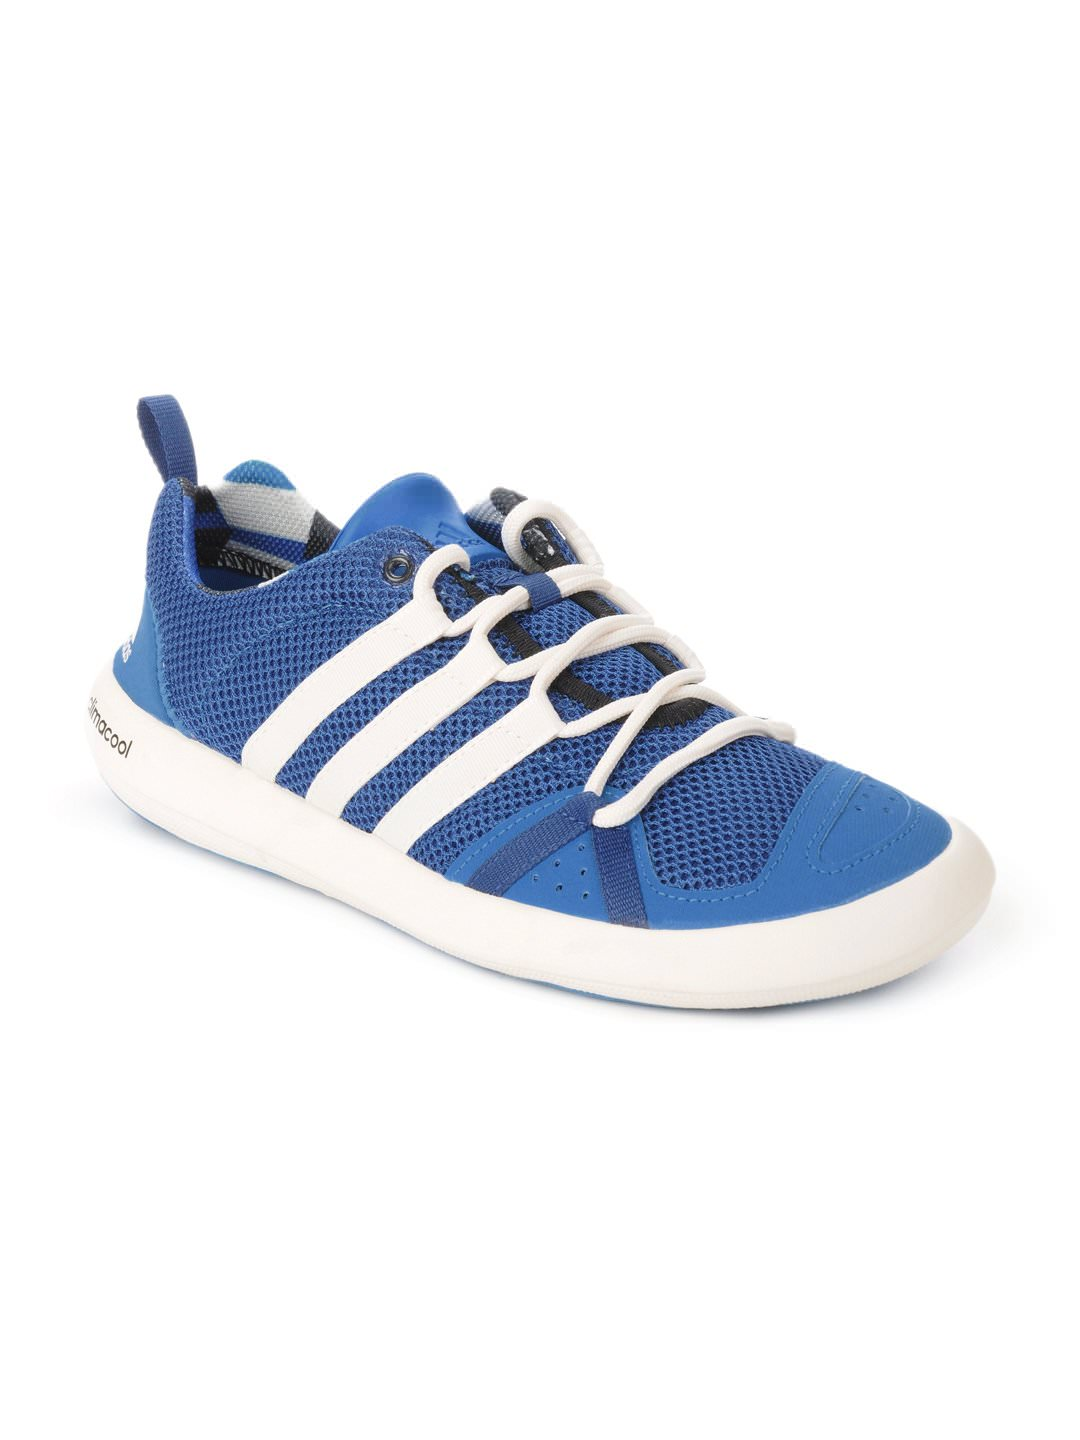 Casual shoes for men adidas